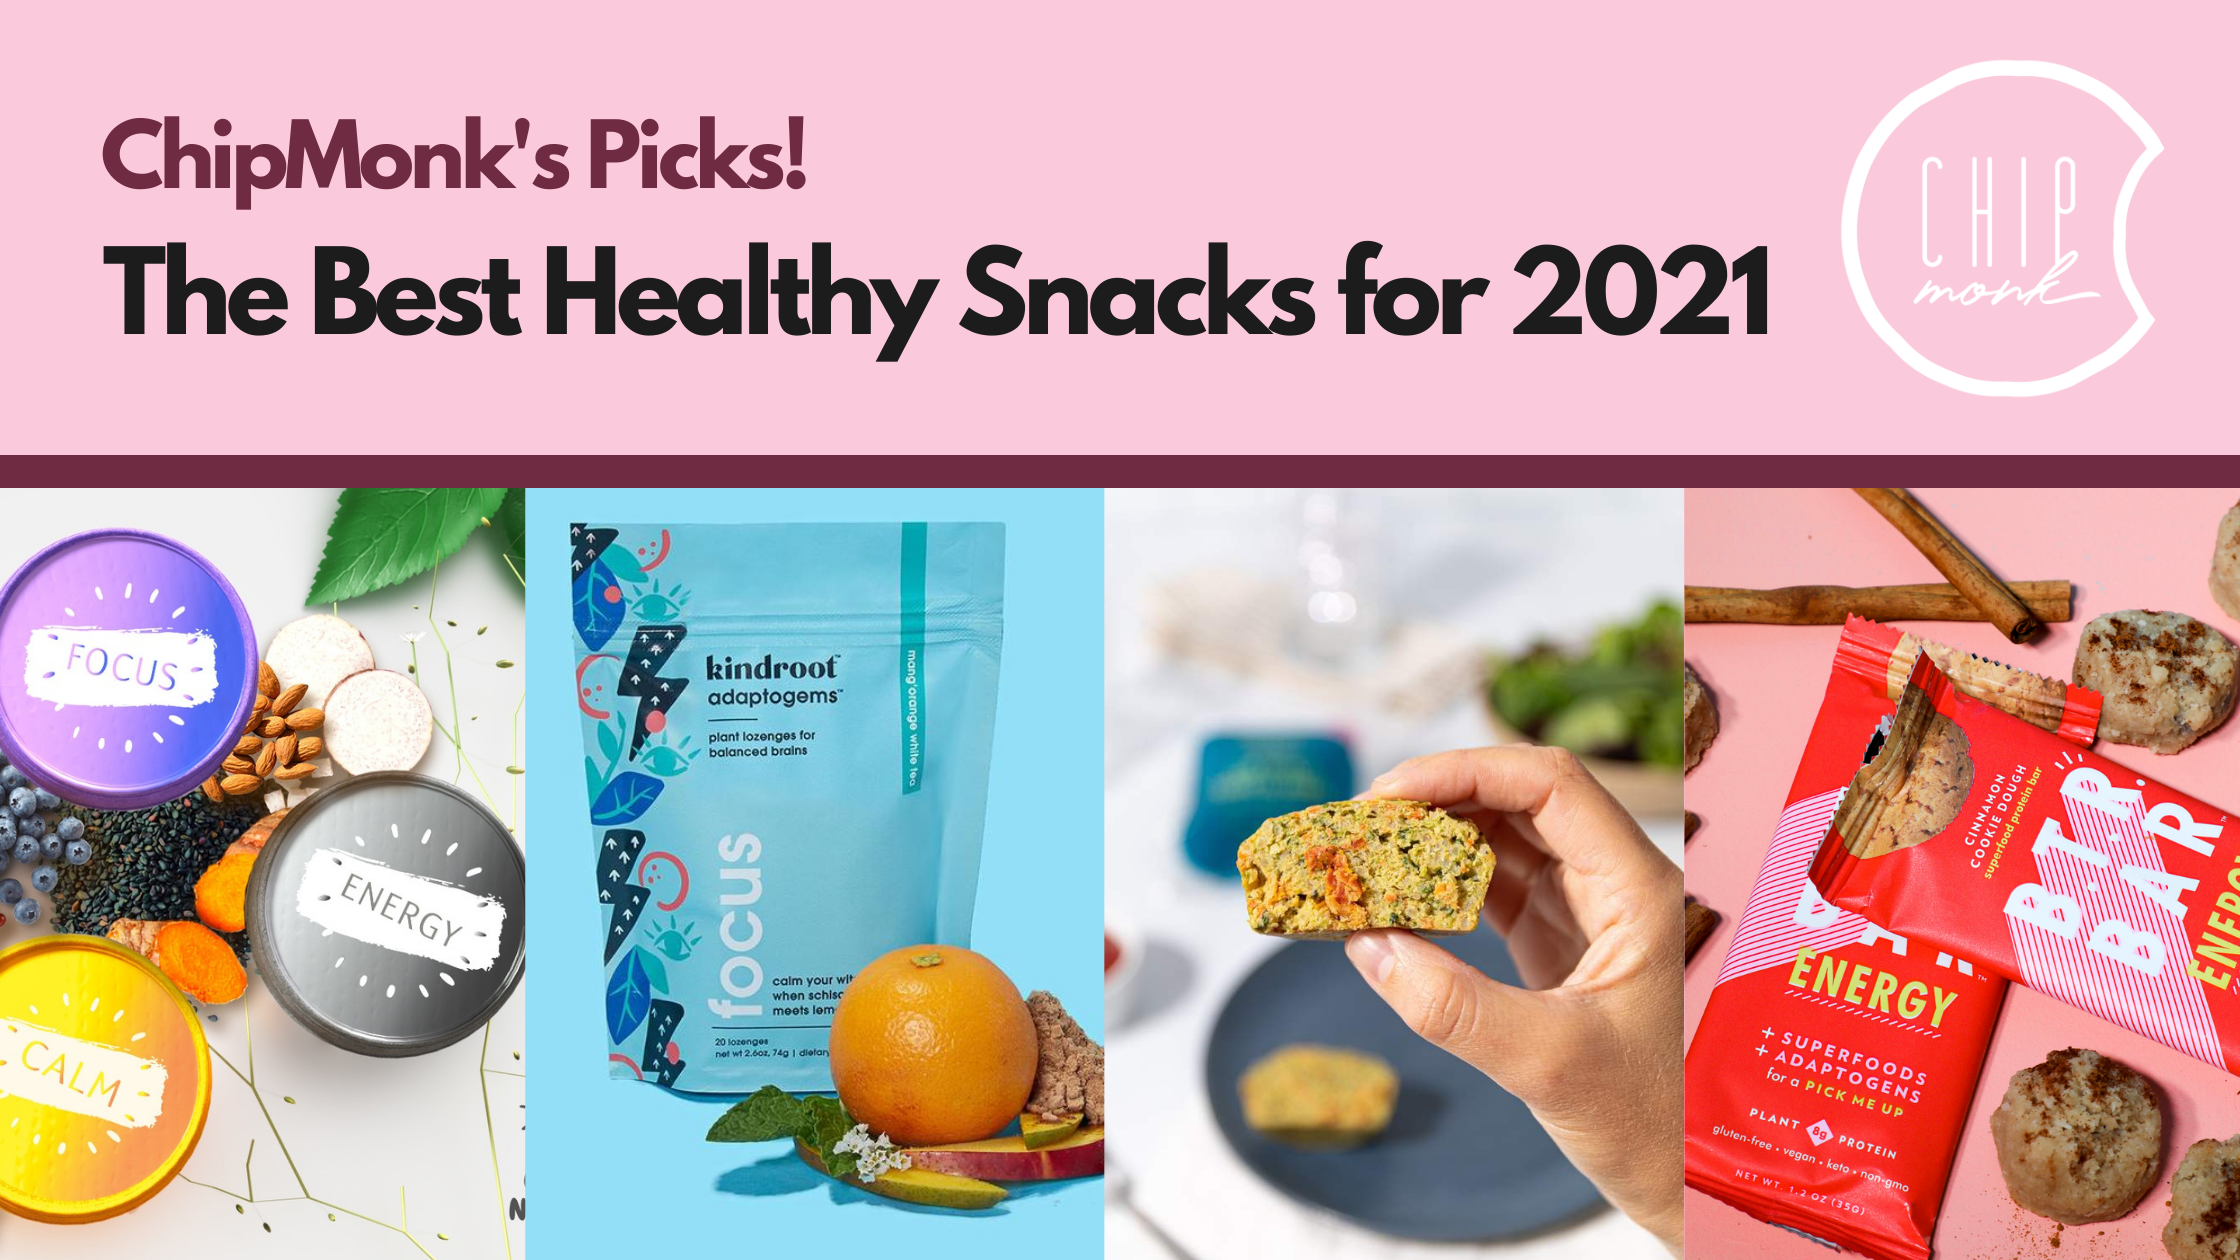 ChipMonk's Best Healthy Snacks for 2021